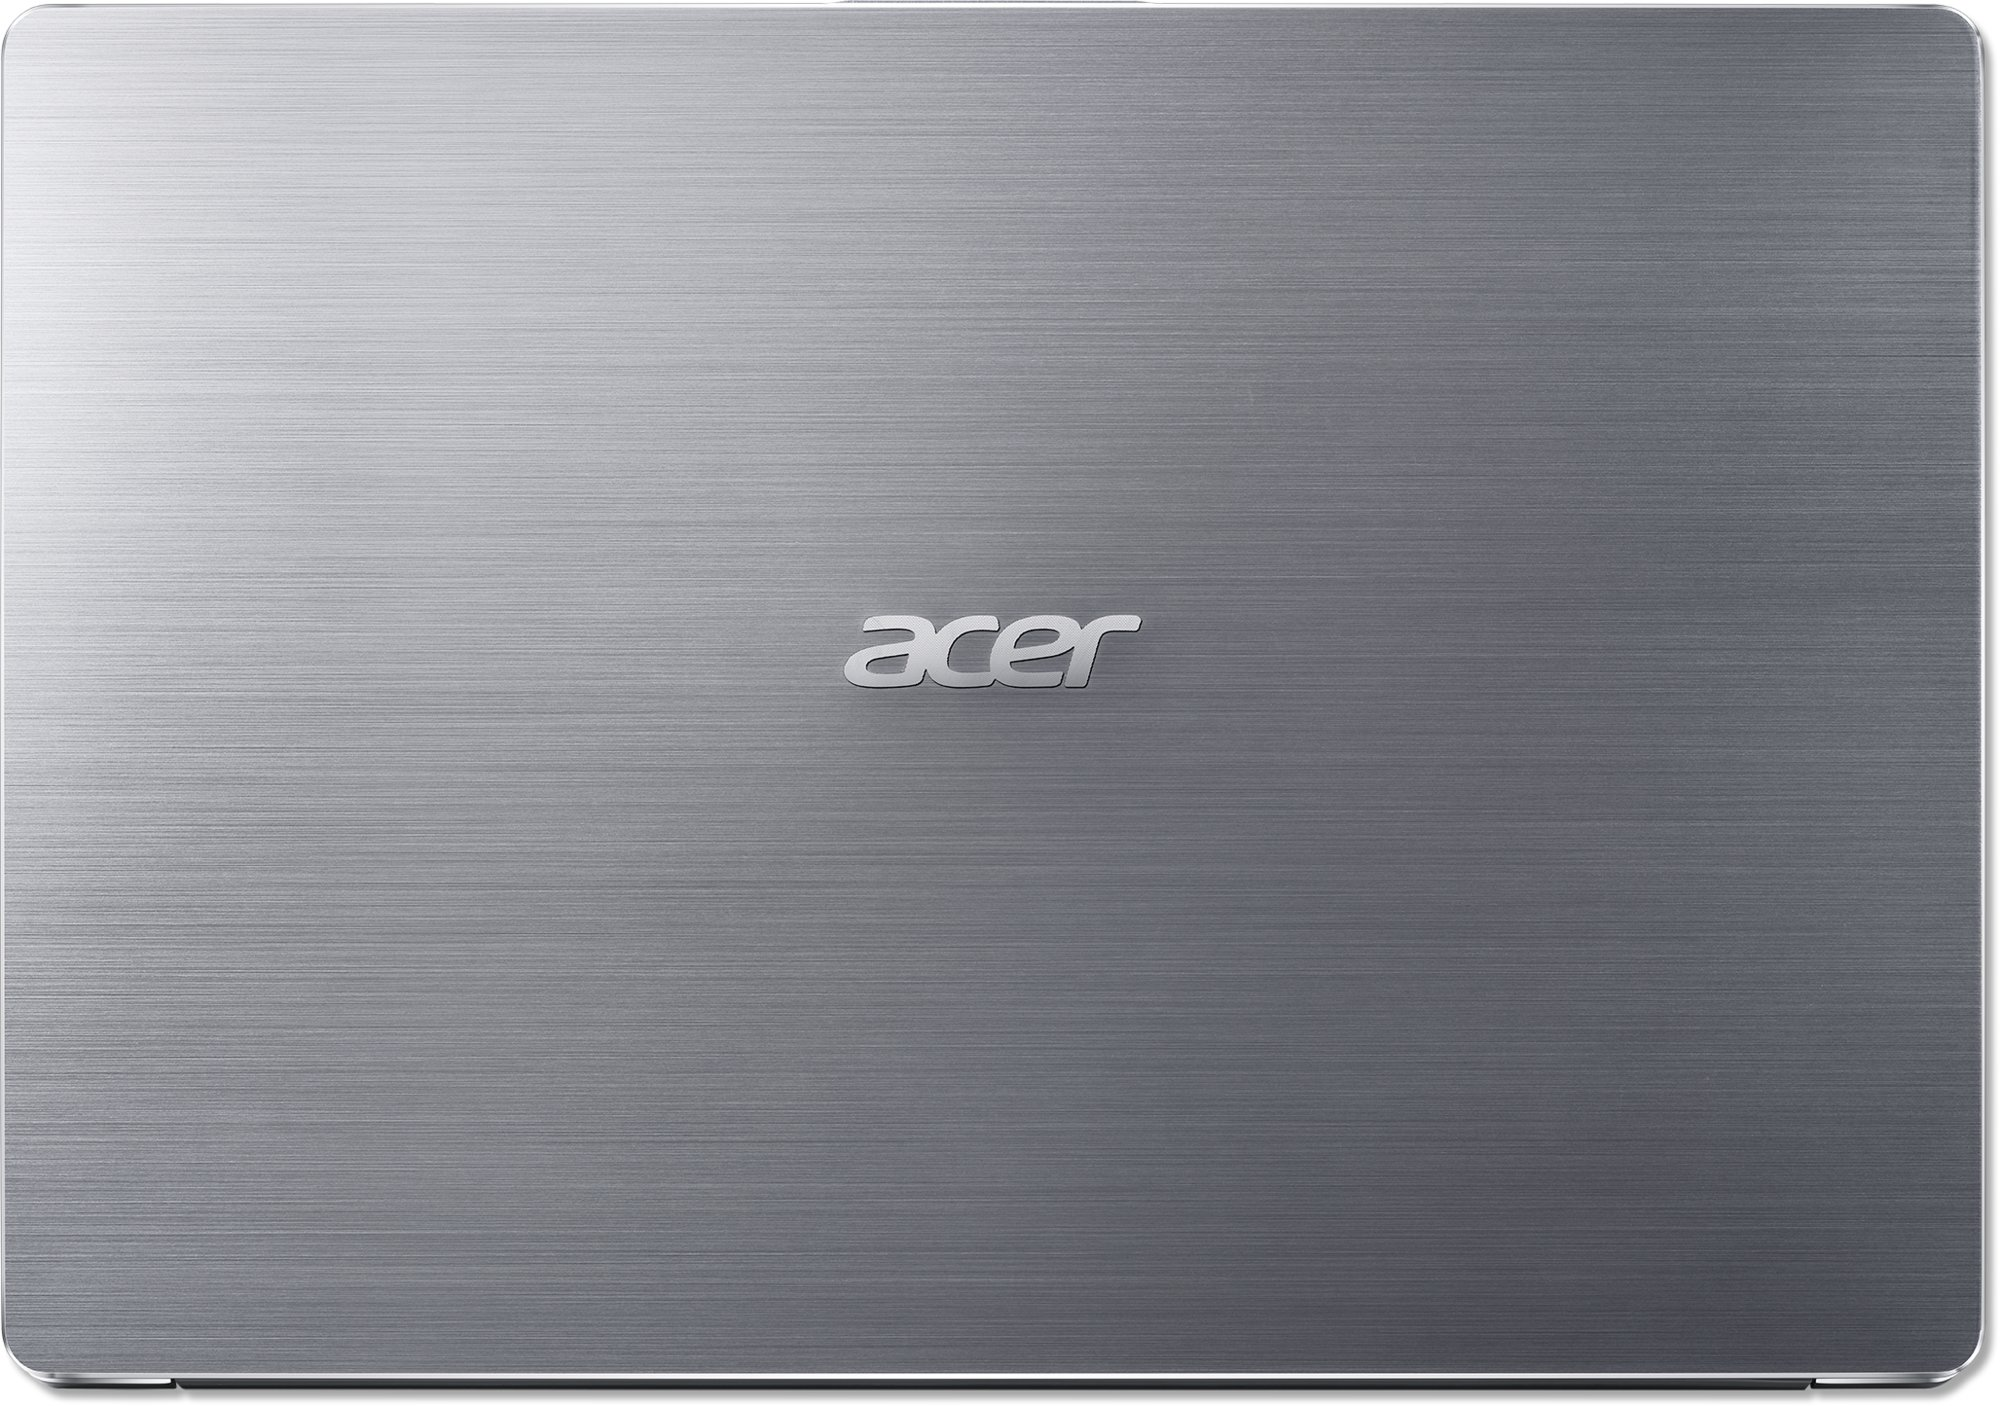 Acer Swift 3 SF314-56G-75SV